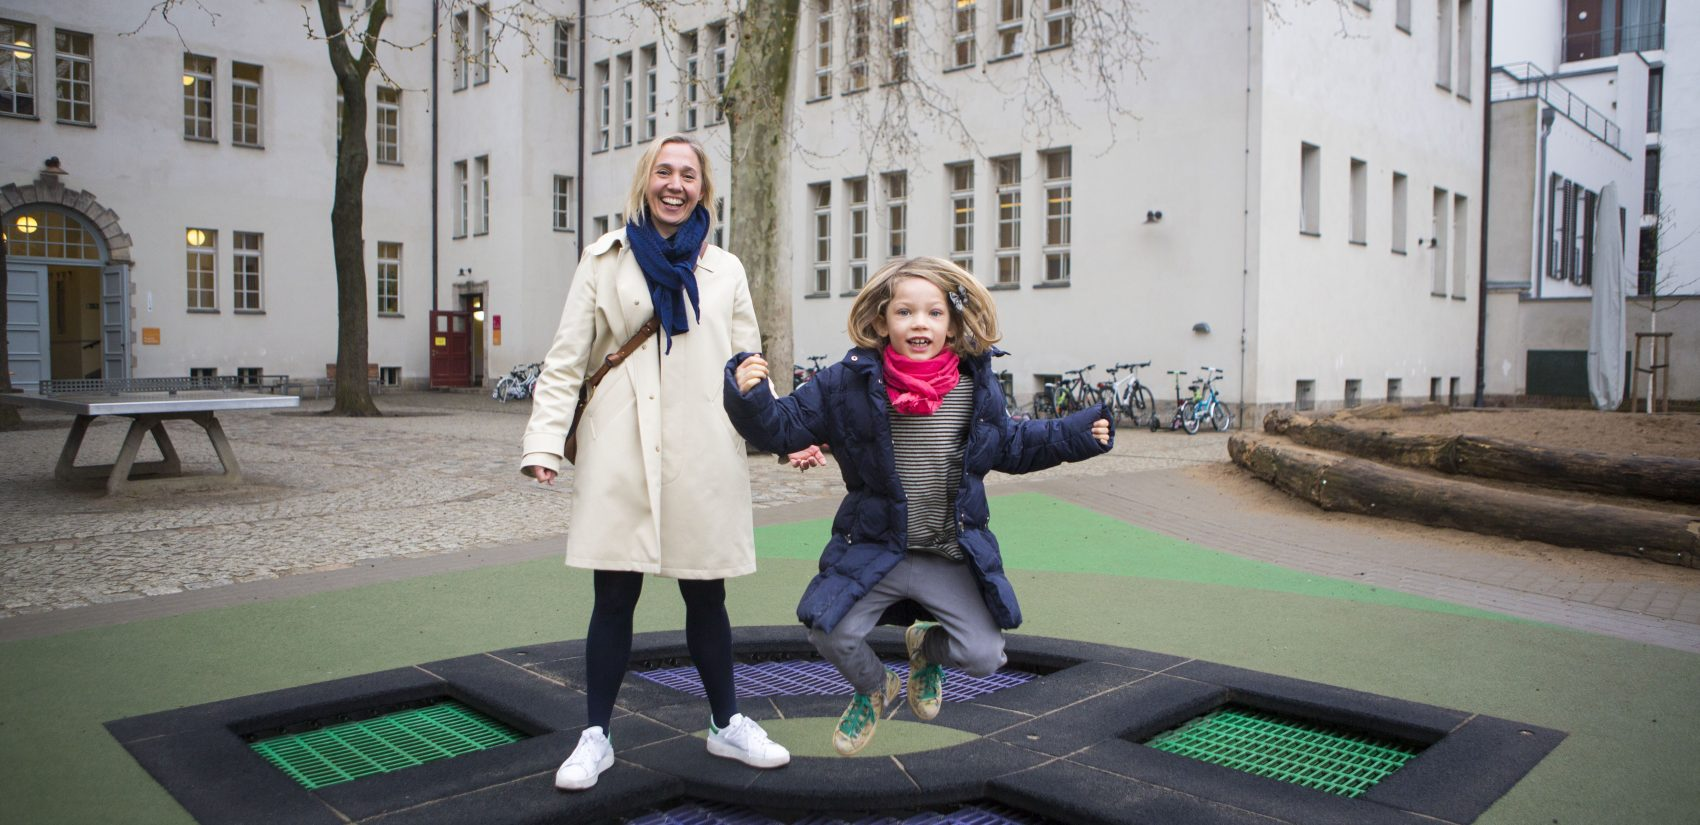 Anke Krause (left) with her daughter Mia in the playground at Koppenplatz elementary where both her daughters attend. (Jessica Kourkounis/For Keystone Crossroads)